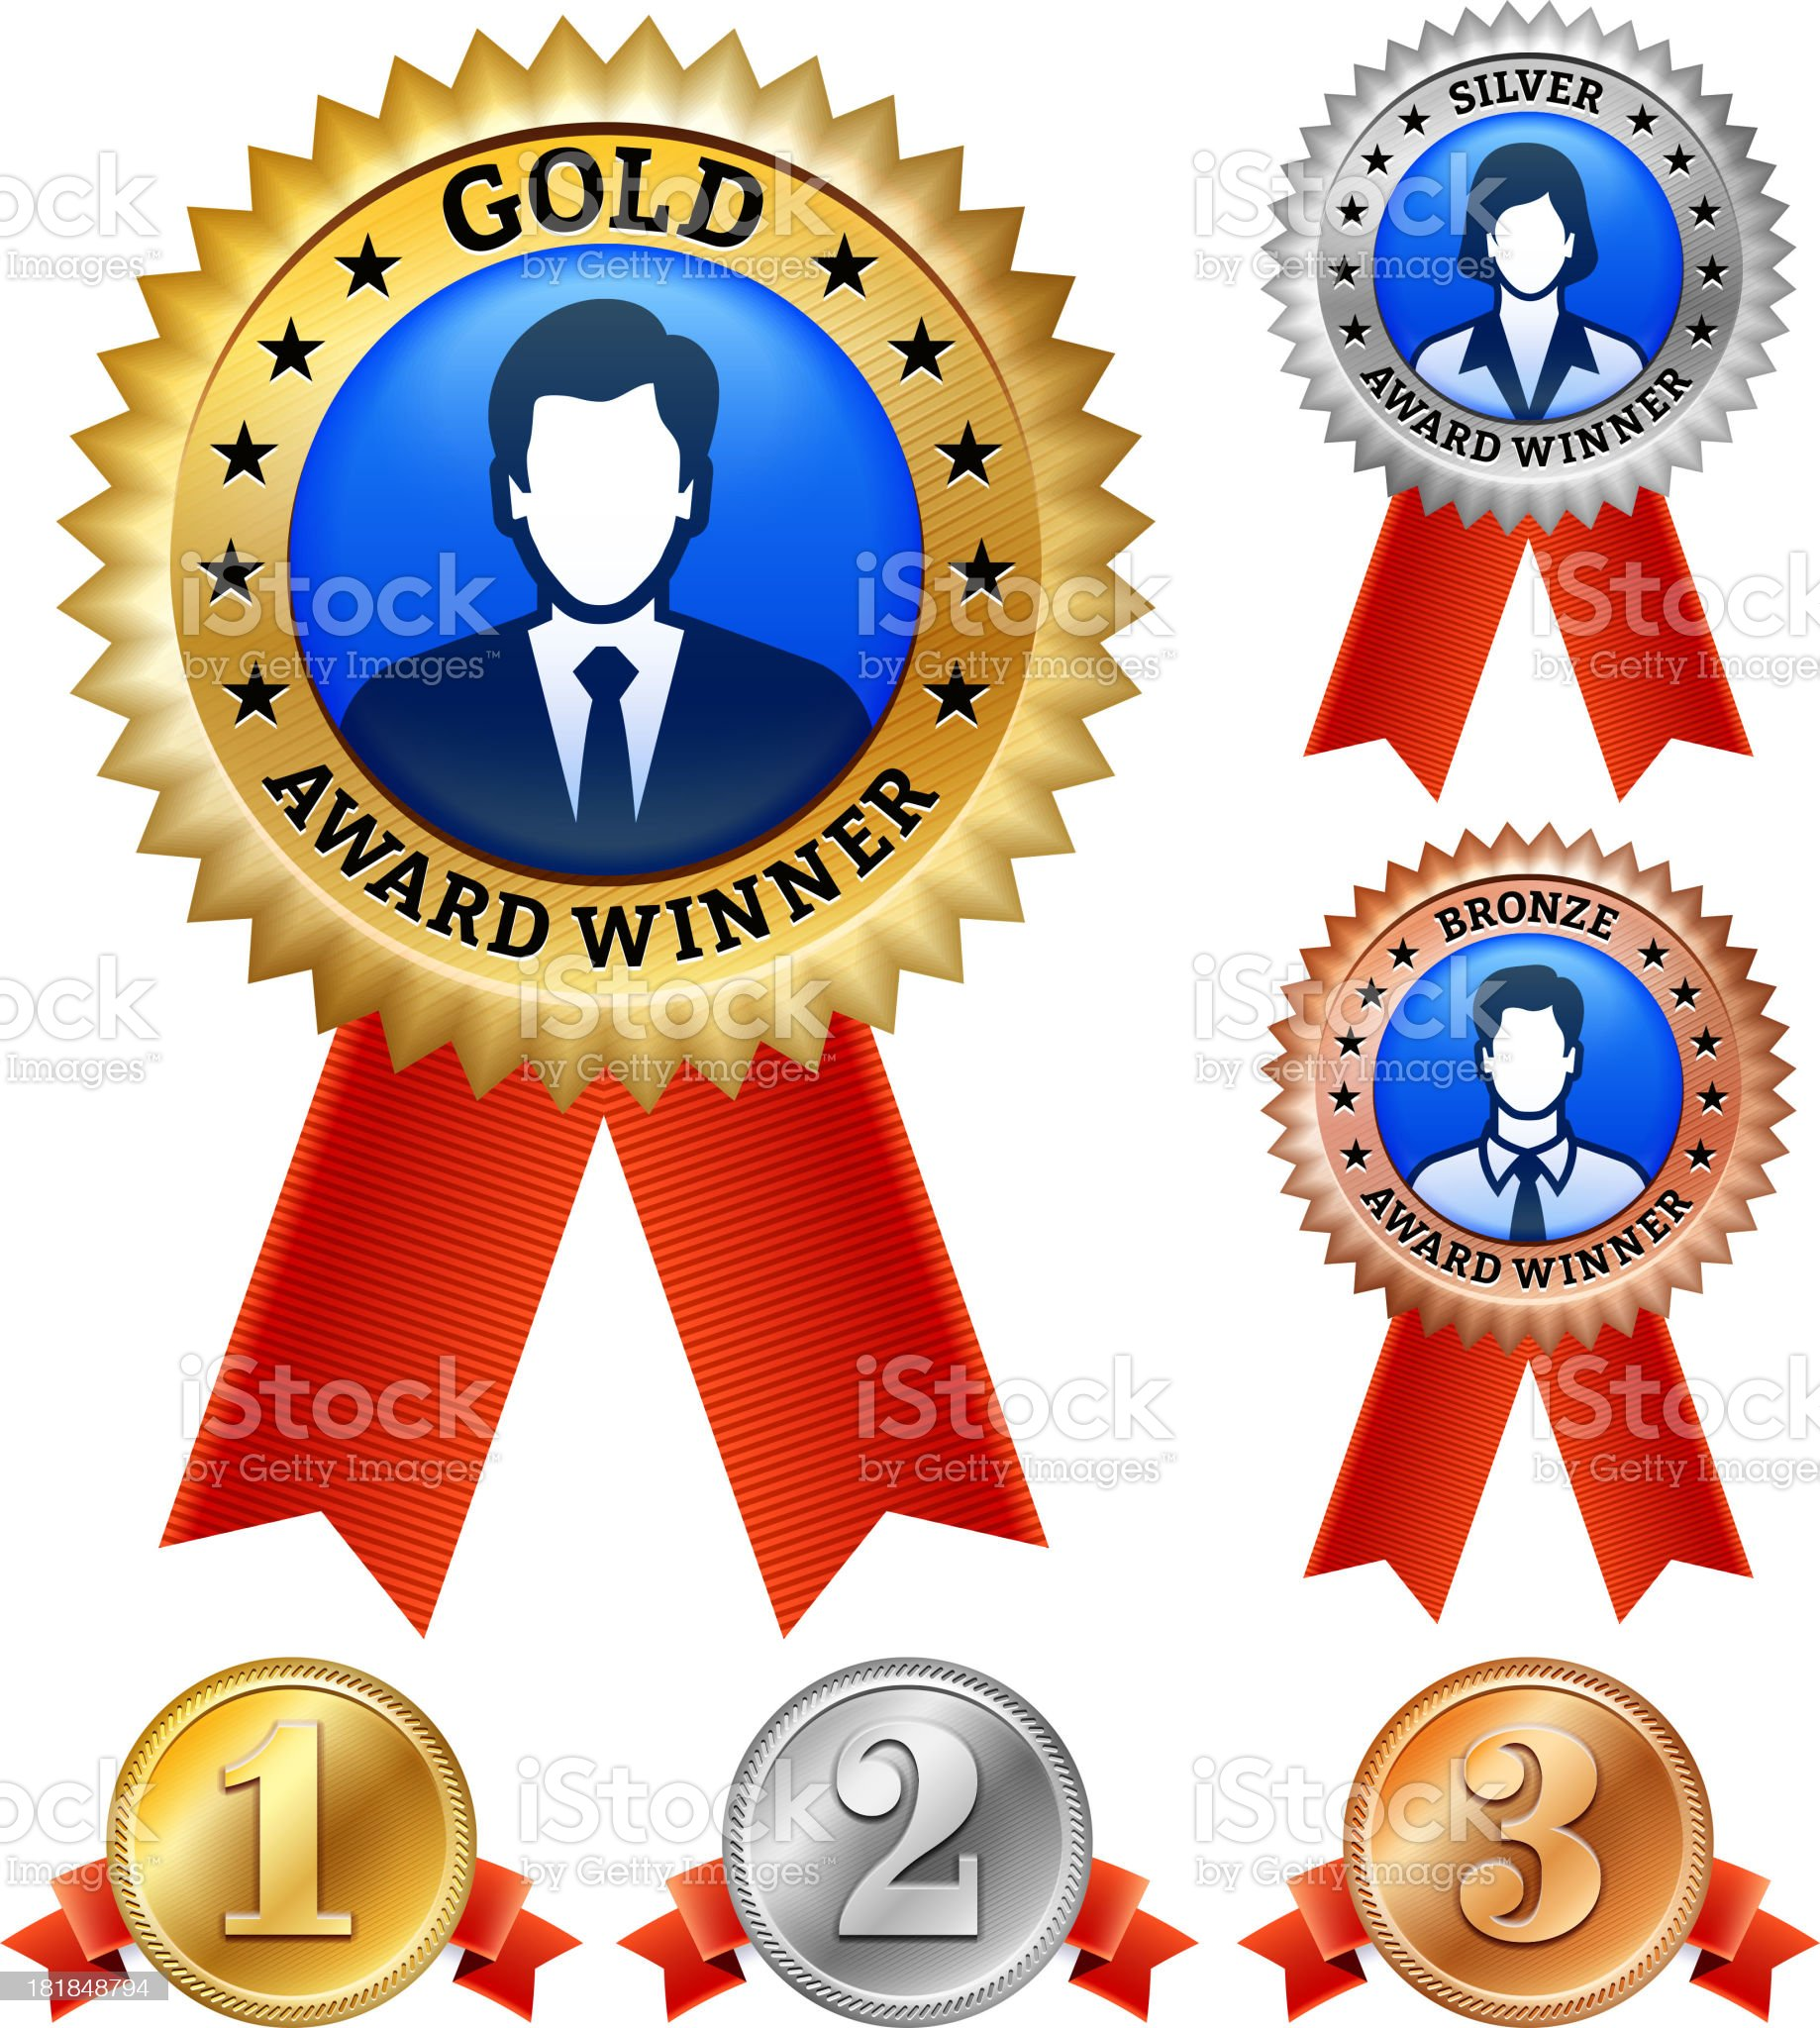 man and woman Winning Business Badge royalty-free stock vector art